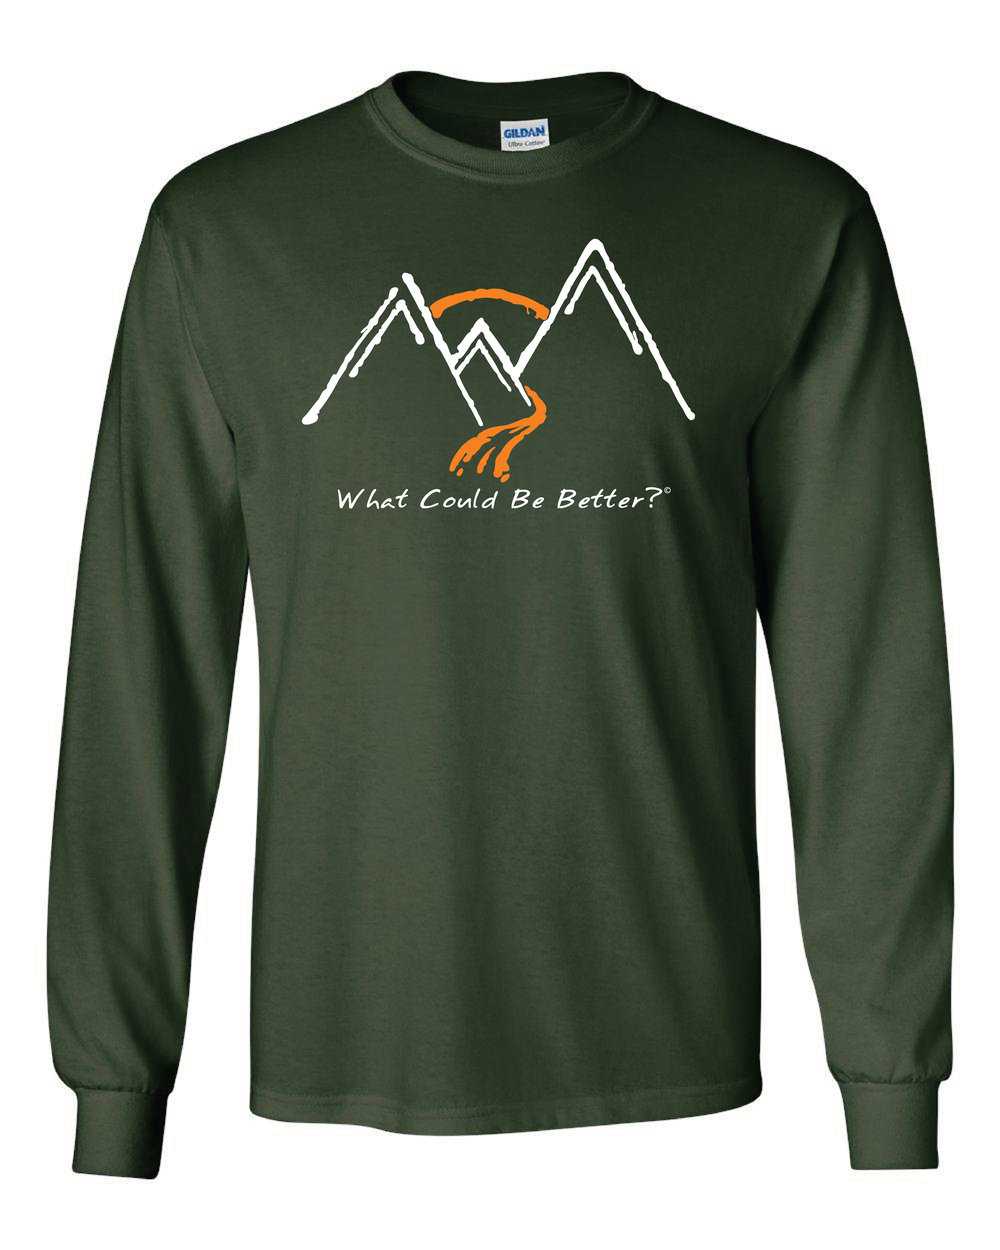 WCBB? Original  $35 (various colors)